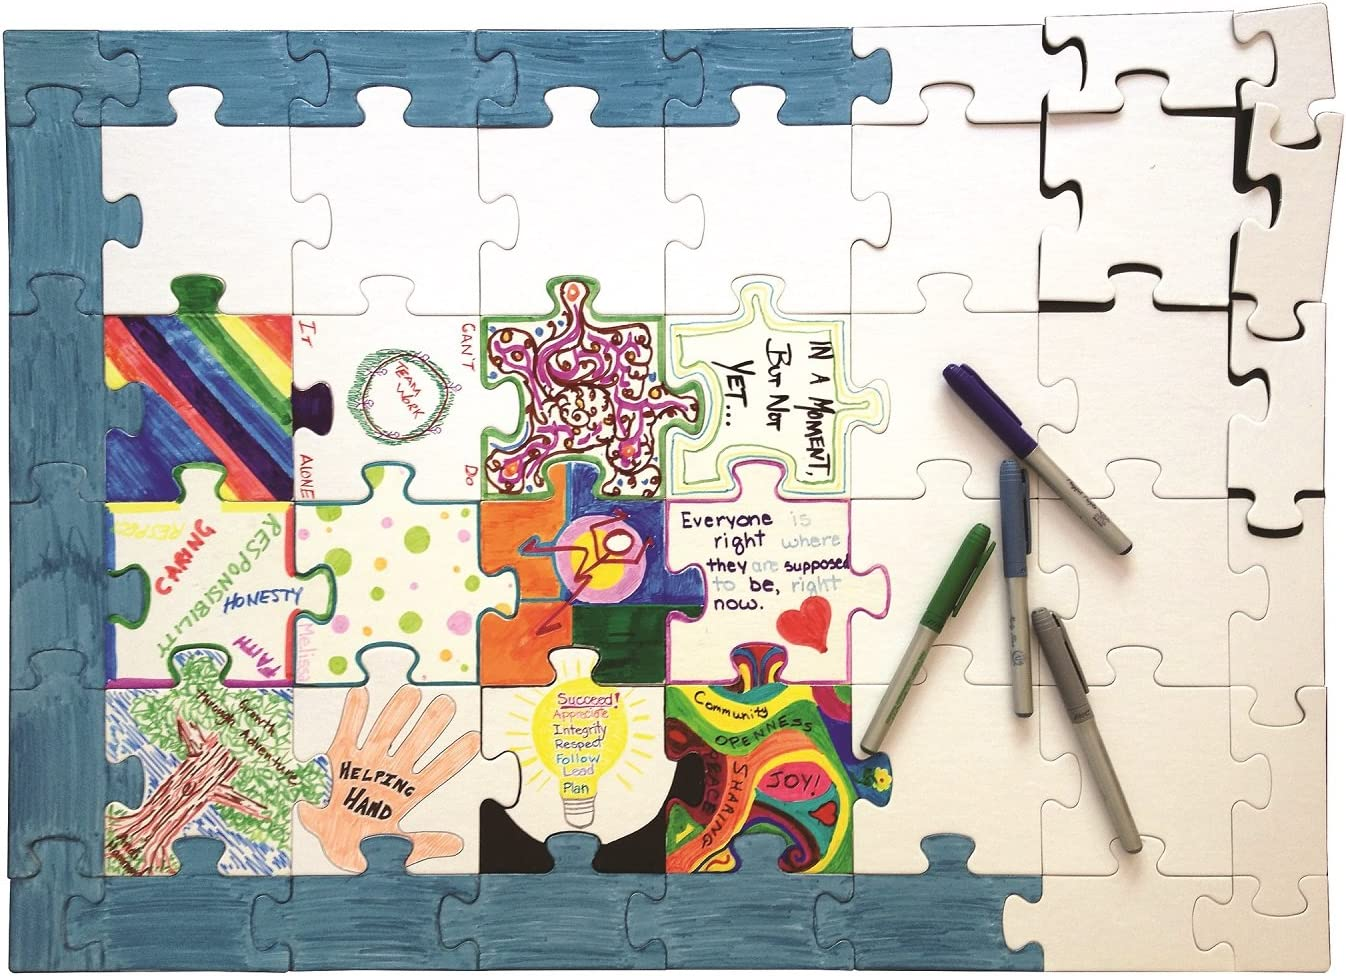 """Hygloss Products Blank Community Puzzle - Fun Group Activity - Great for Parties, Weddings, Classroom, Office & More - 20"""" x 28"""" Inches - 48 White Puzzle Pieces - 1 Pack"""